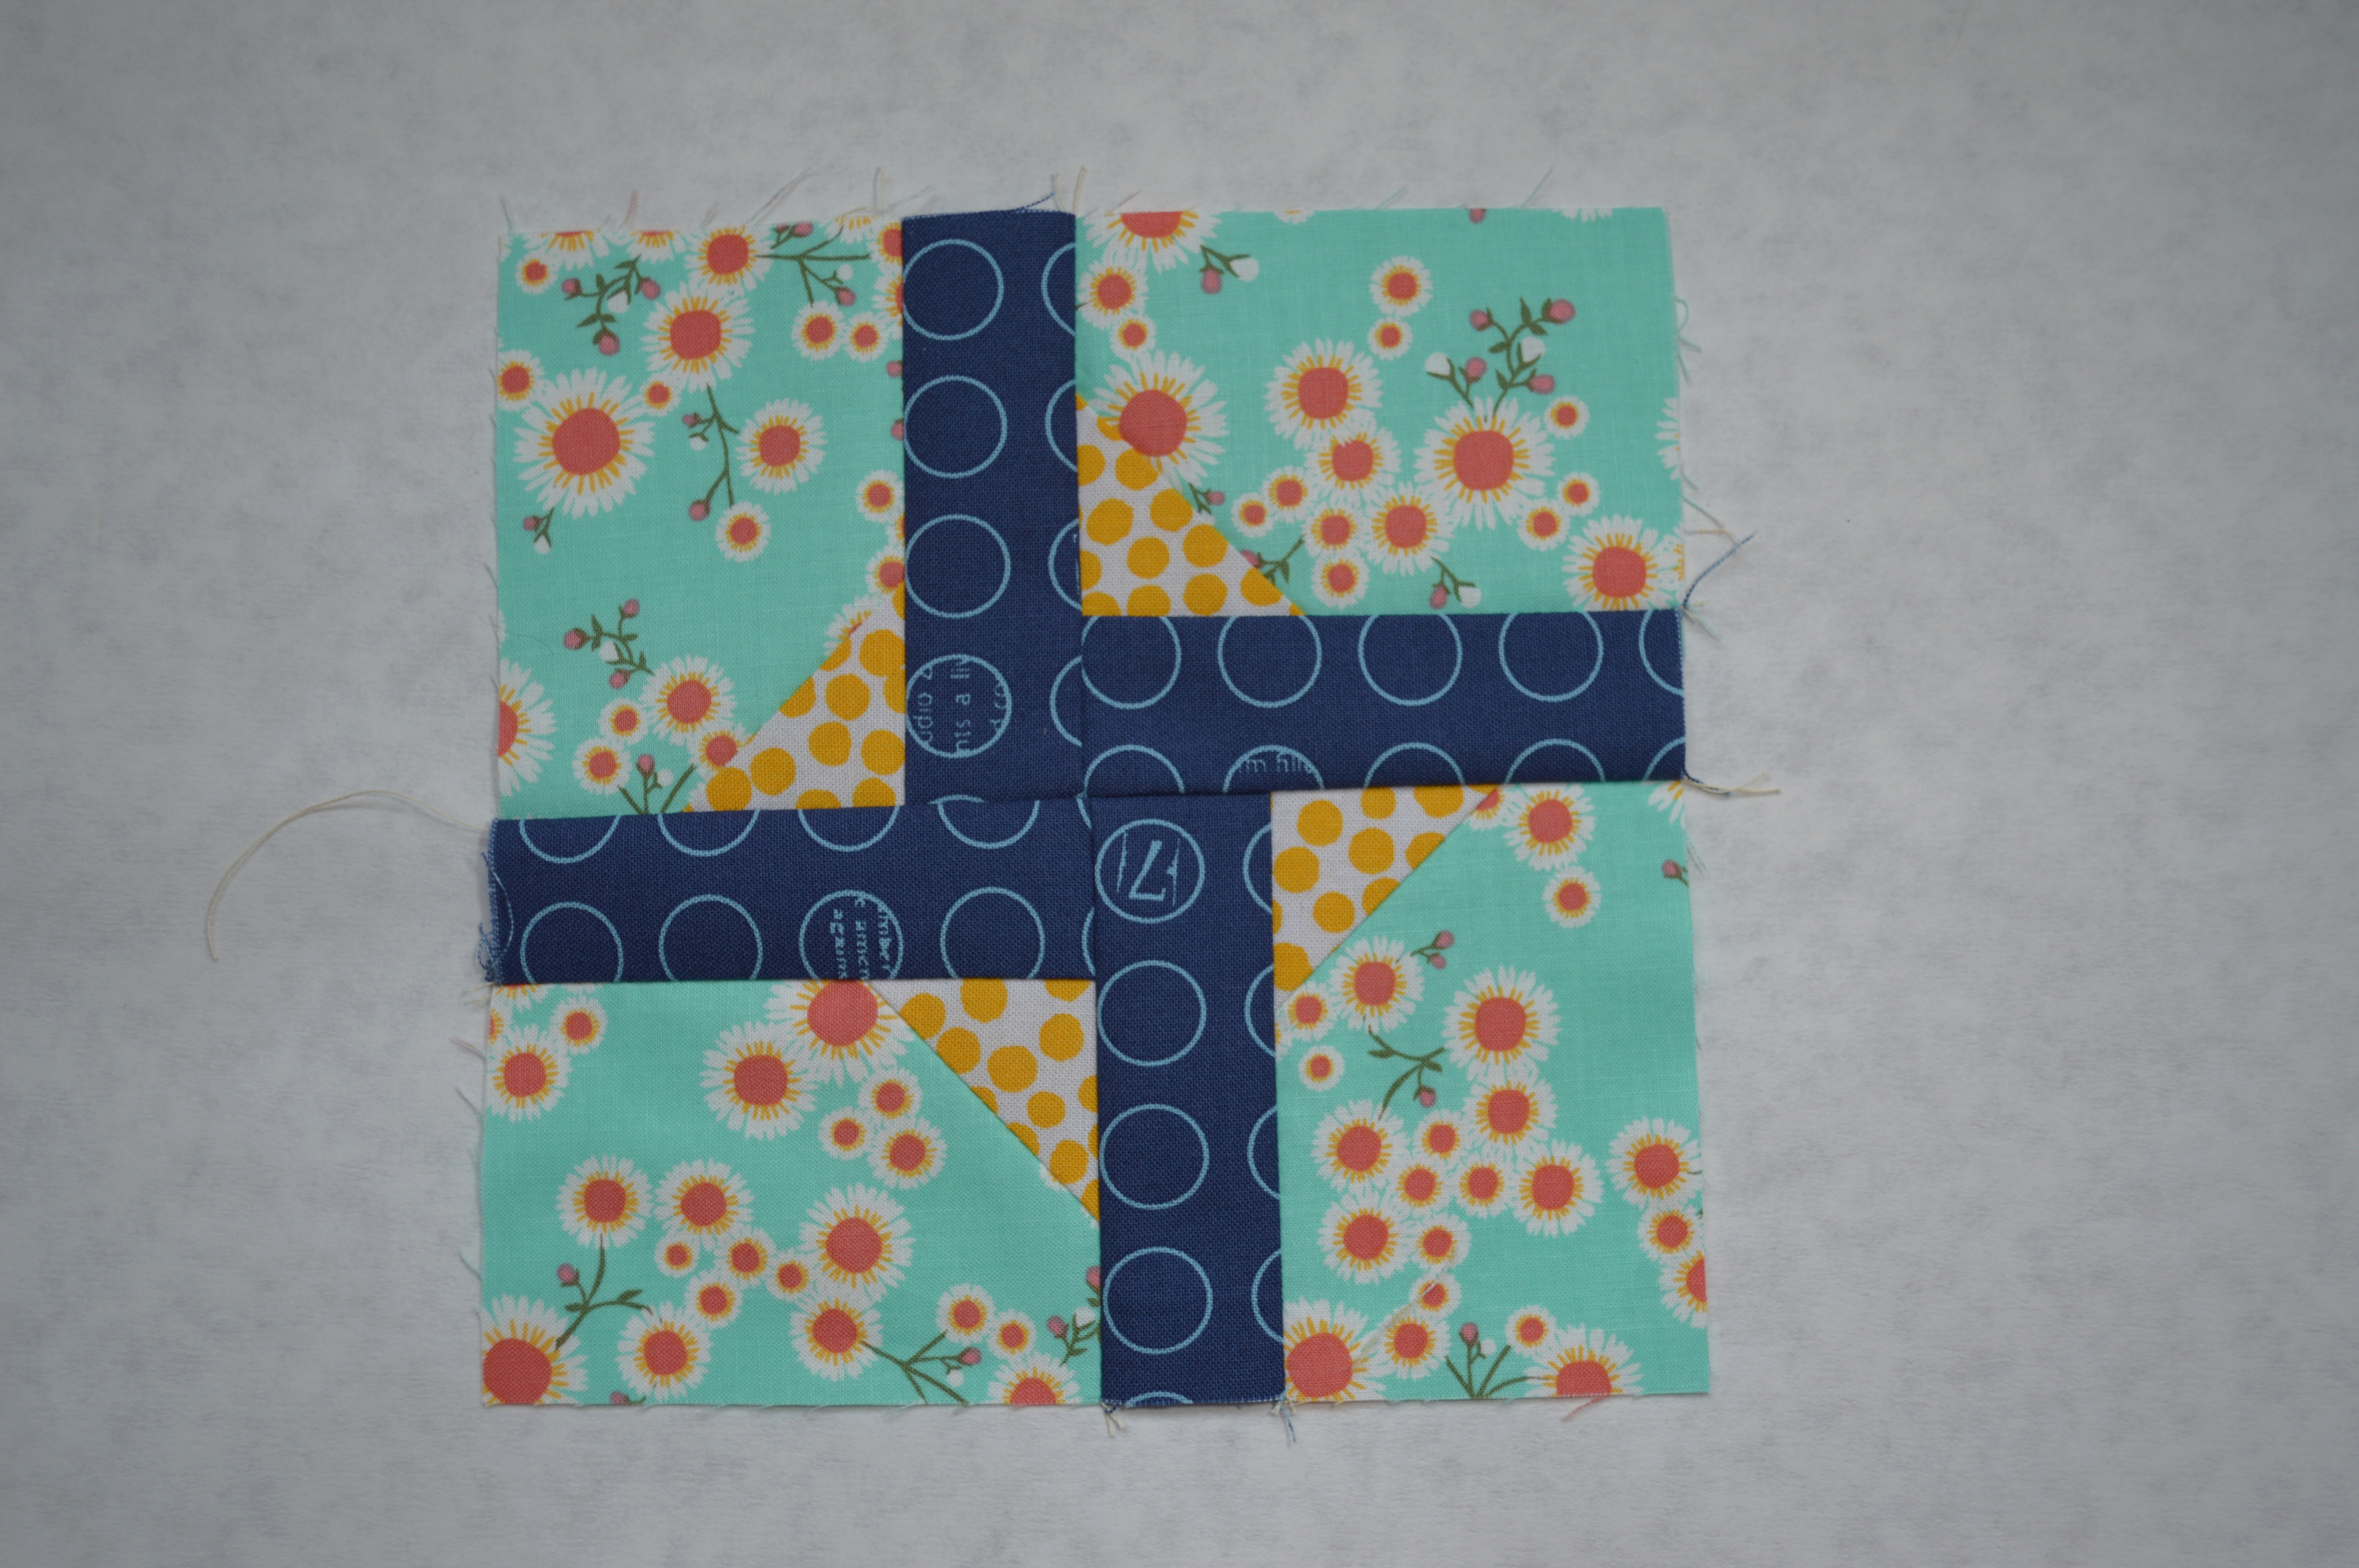 https://colorgirlquilts.com/2014/09/quilters-book-club-new-year-new-sampler-quilt.html